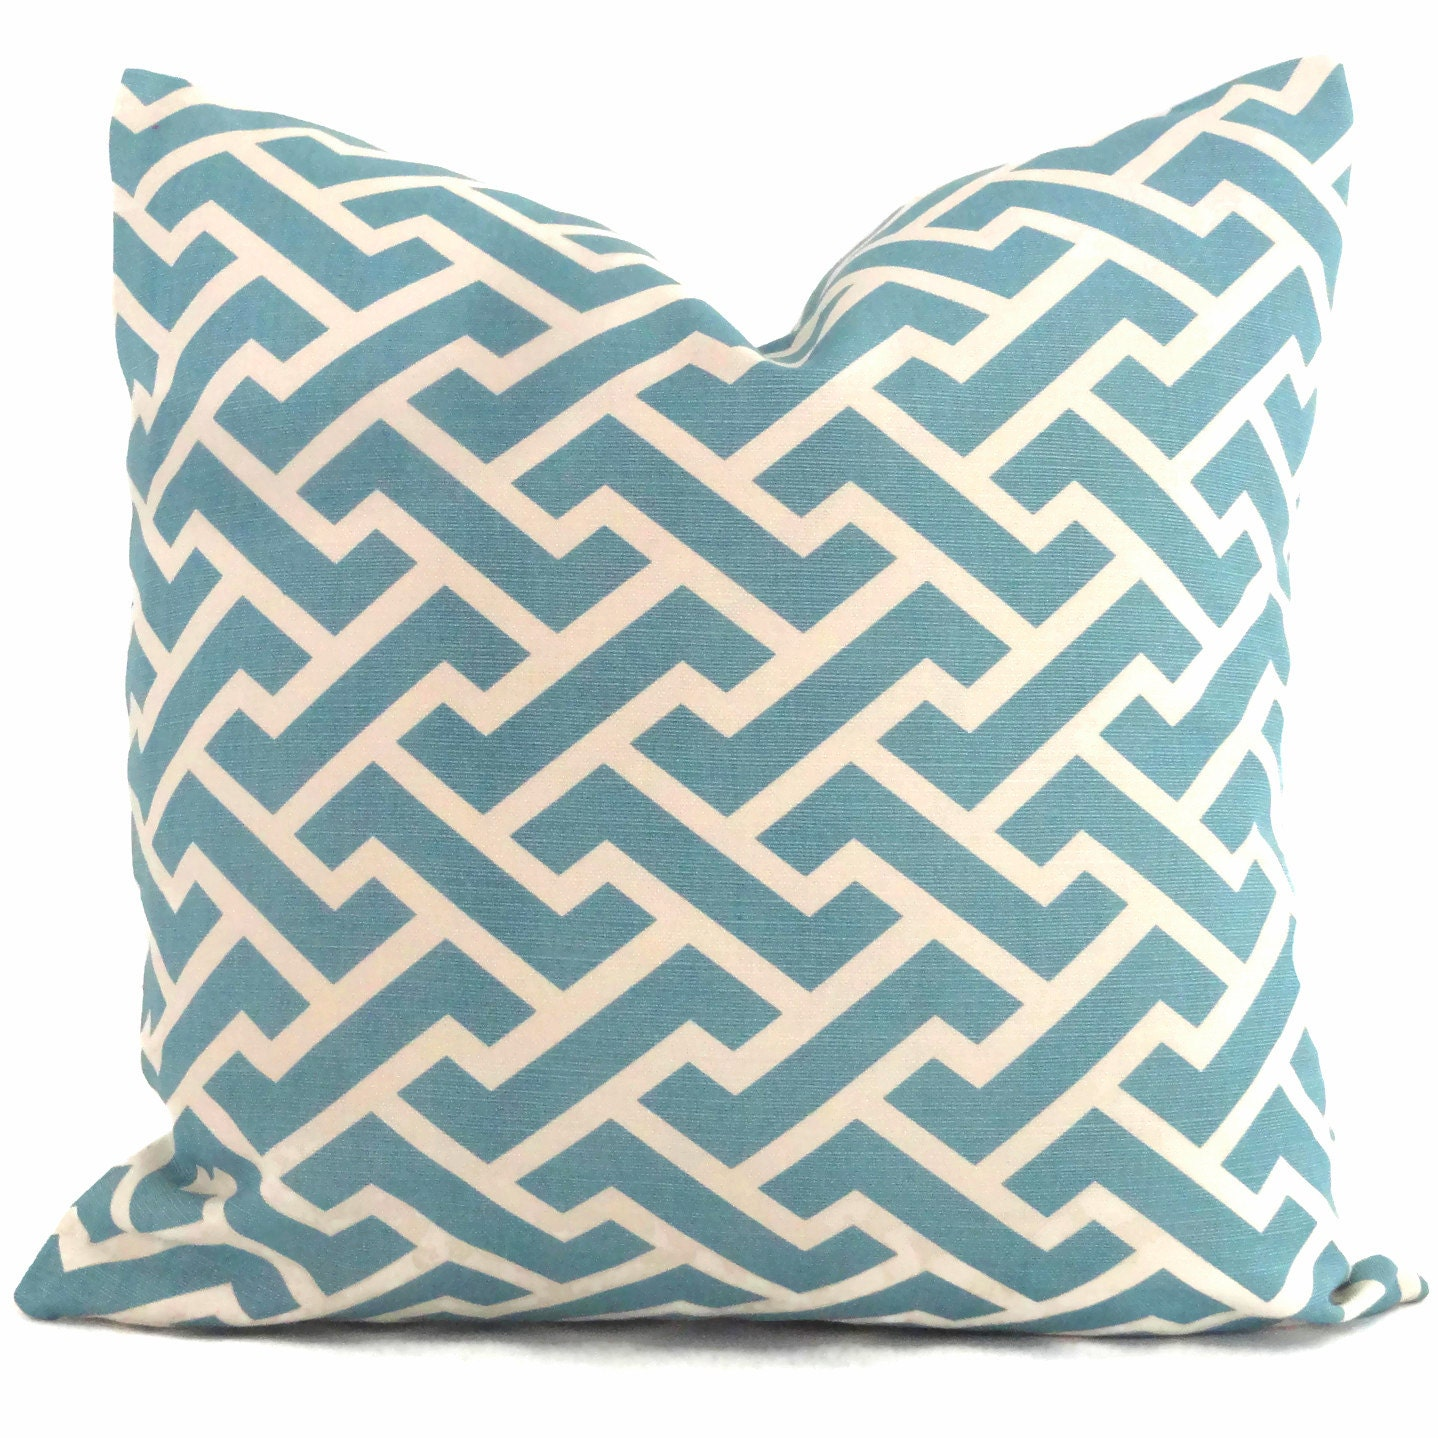 Queen Throw Pillows : Aqua Aga Reverse Quadrille China Seas Pillow Cover Square